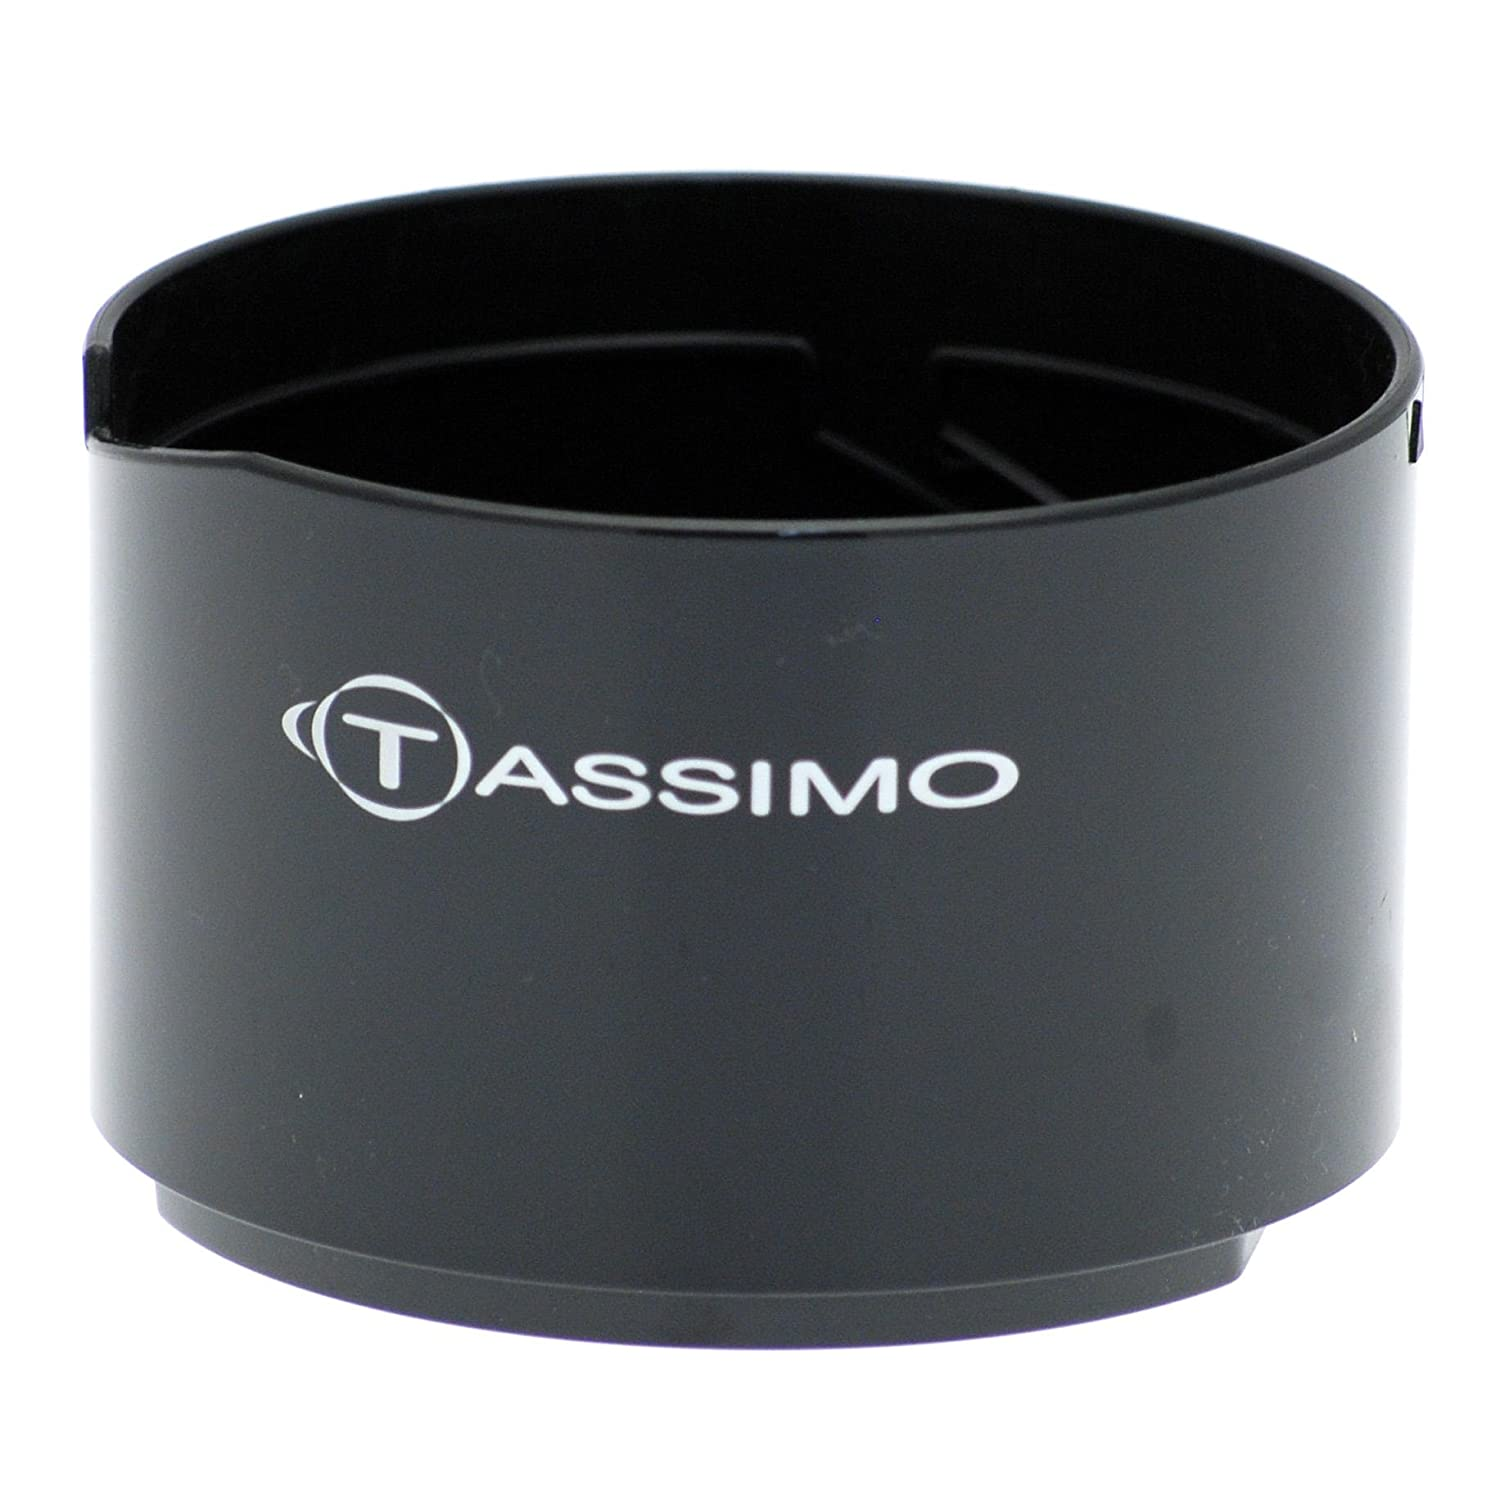 Drip Tray / Salver for Tassimo T20, T40, T65, T85, Bosch Spare Part 611150